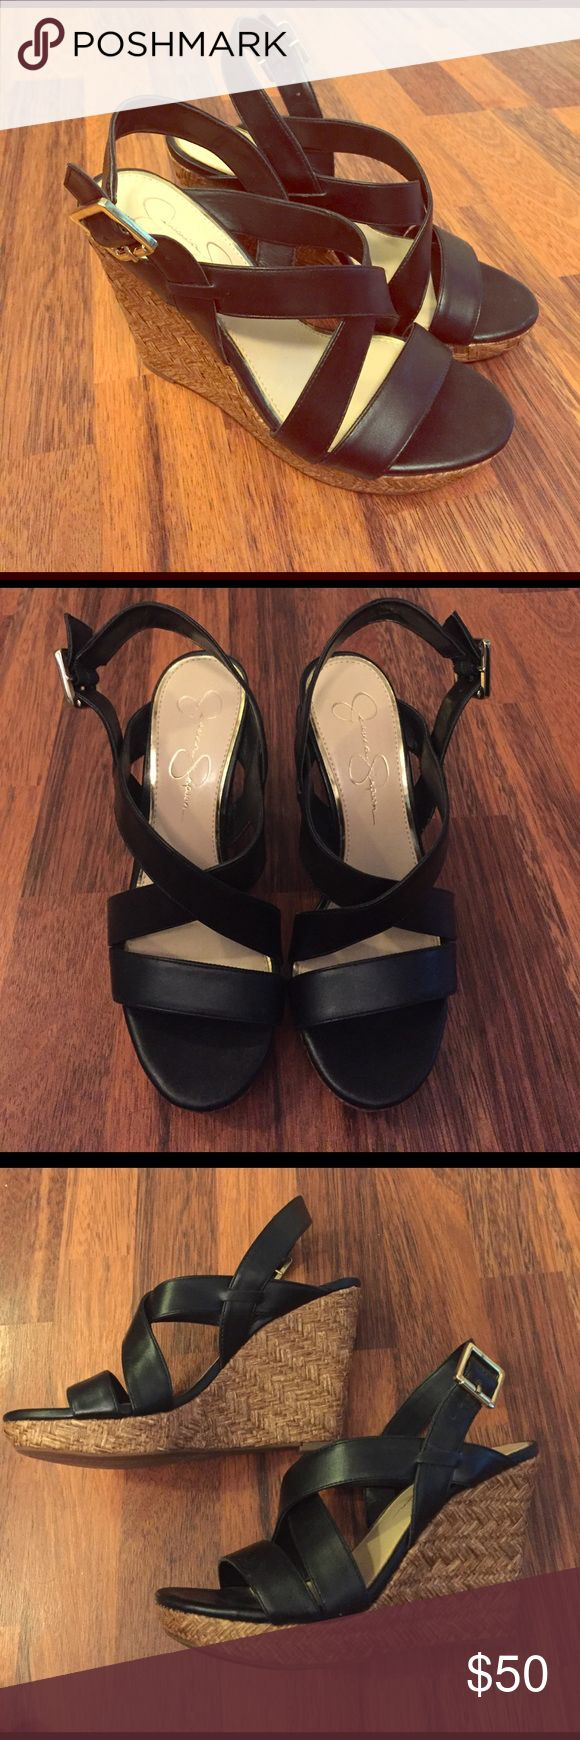 NWOT Jessica Simpson Black Wedge Sandals These Jessica Simpson wedges have never been worn and are perfect for summer! Jessica Simpson Shoes Wedges